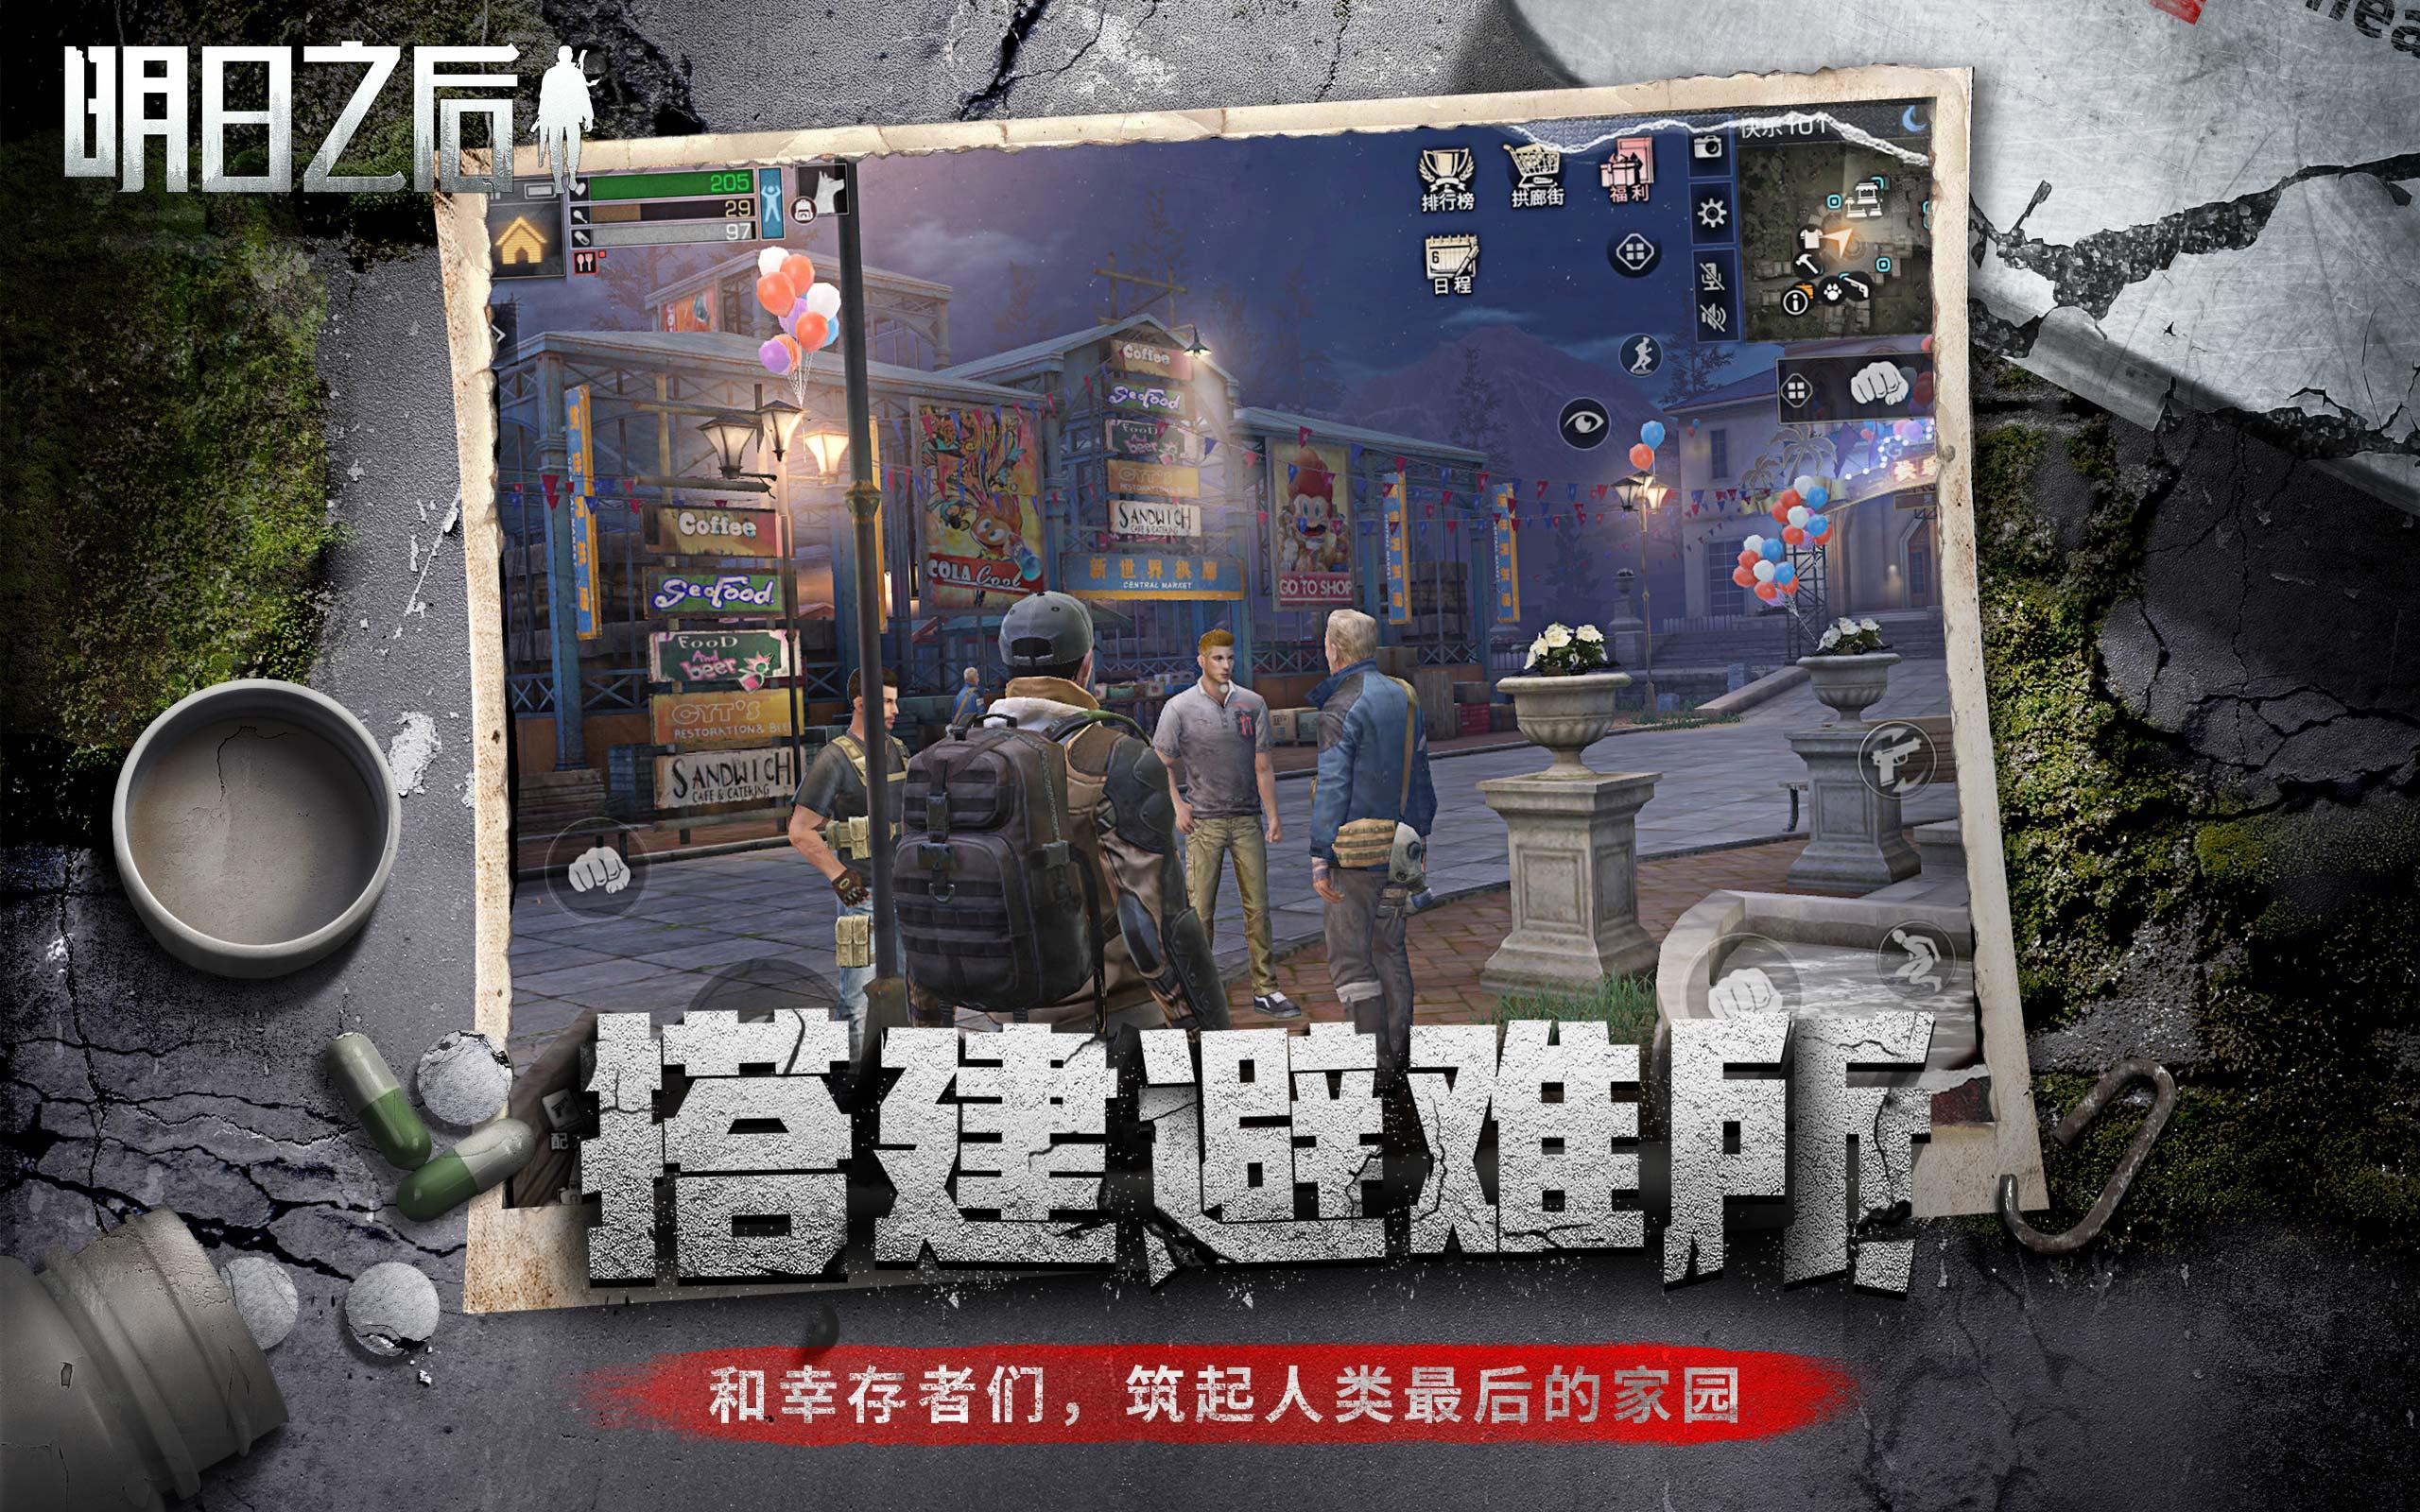 Download LifeAfter-明日之后 on PC with BlueStacks